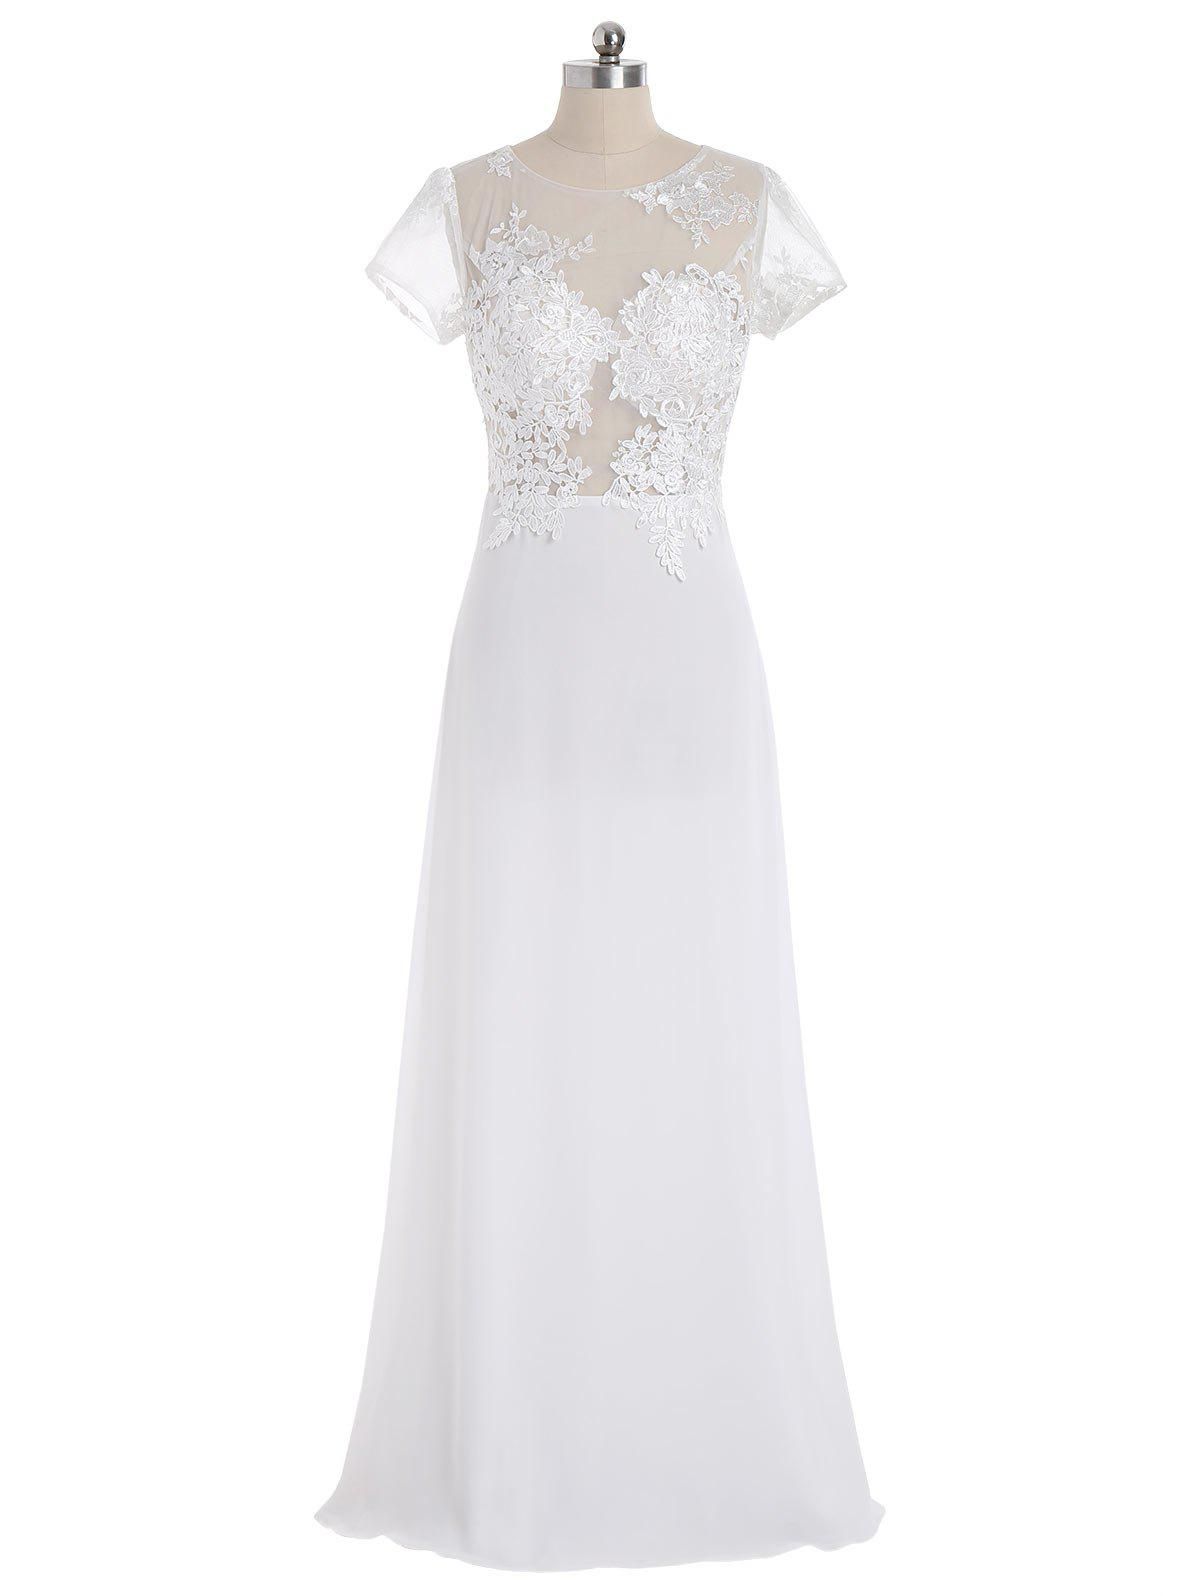 Sheer Mesh Yoke Maxi Evening Dress - WHITE 2XL